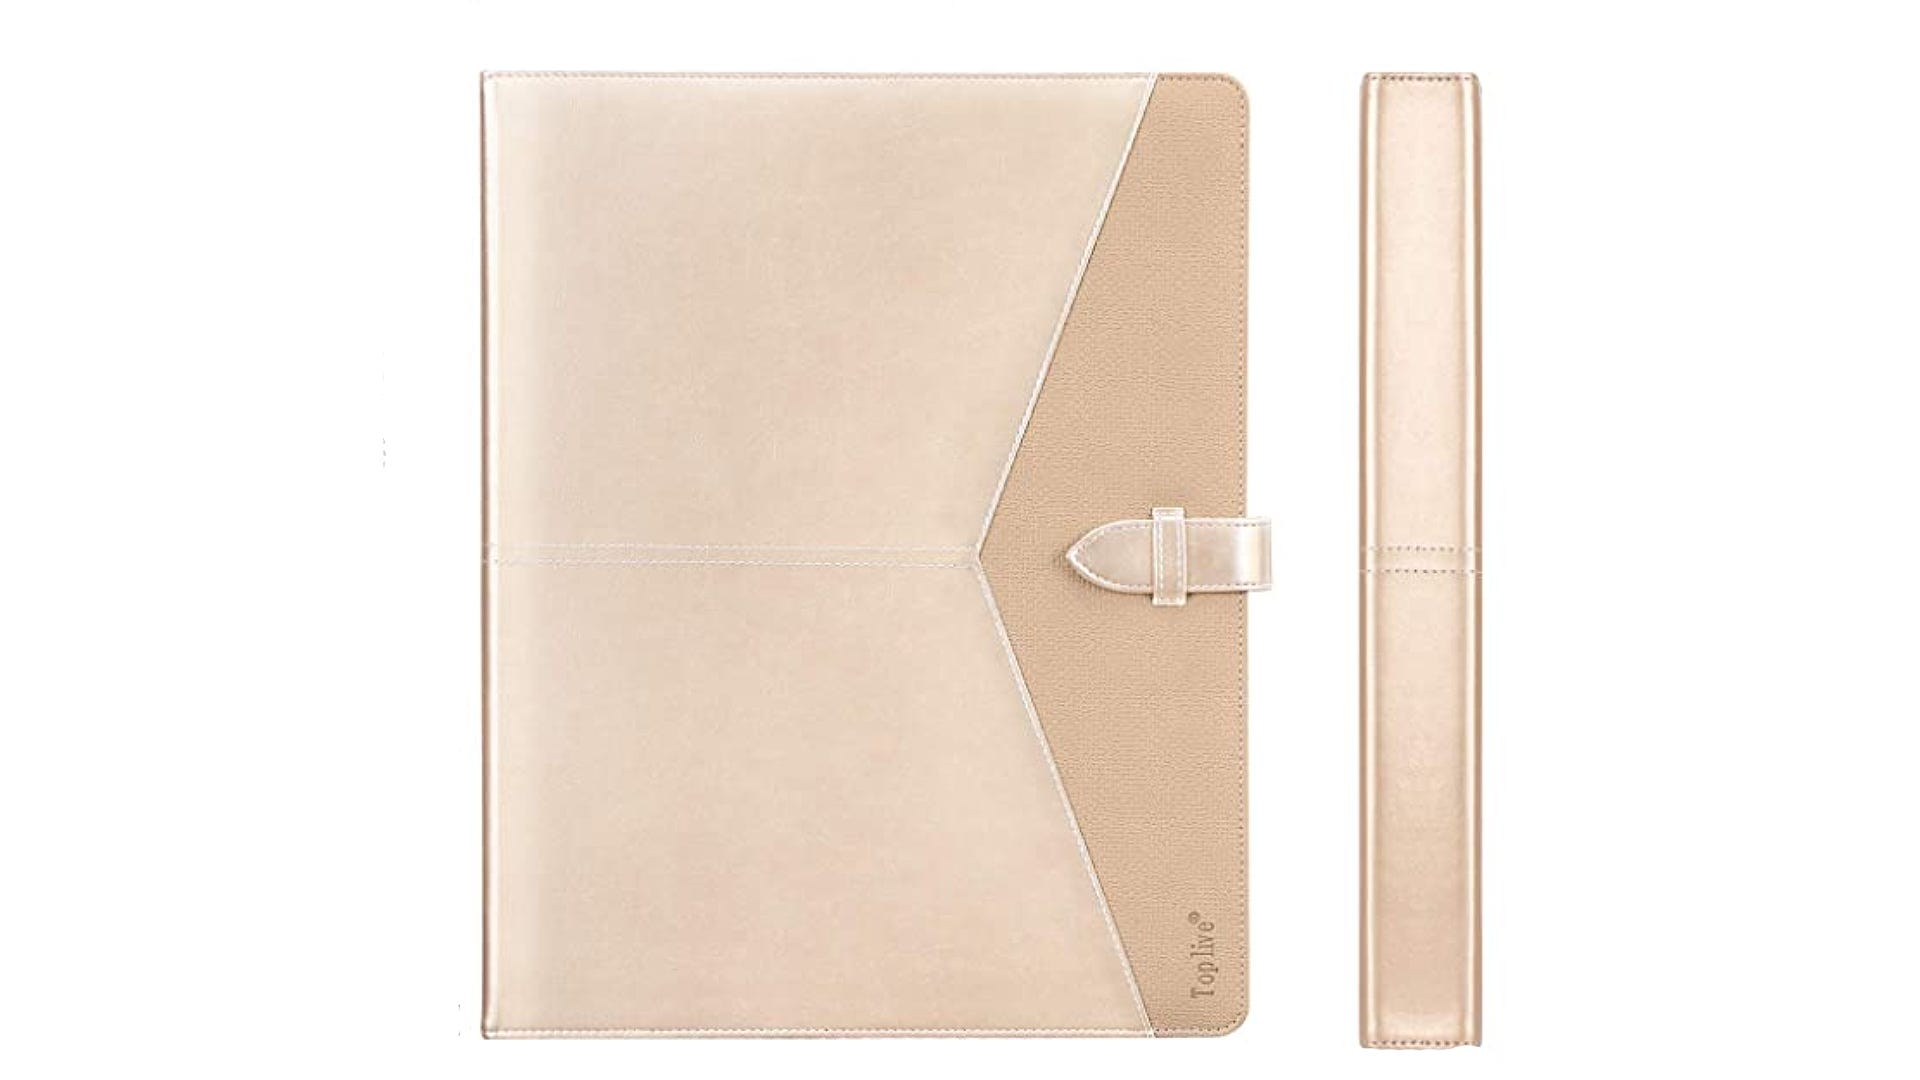 A front and side view of a gold portfolio binder with a buckle closure.